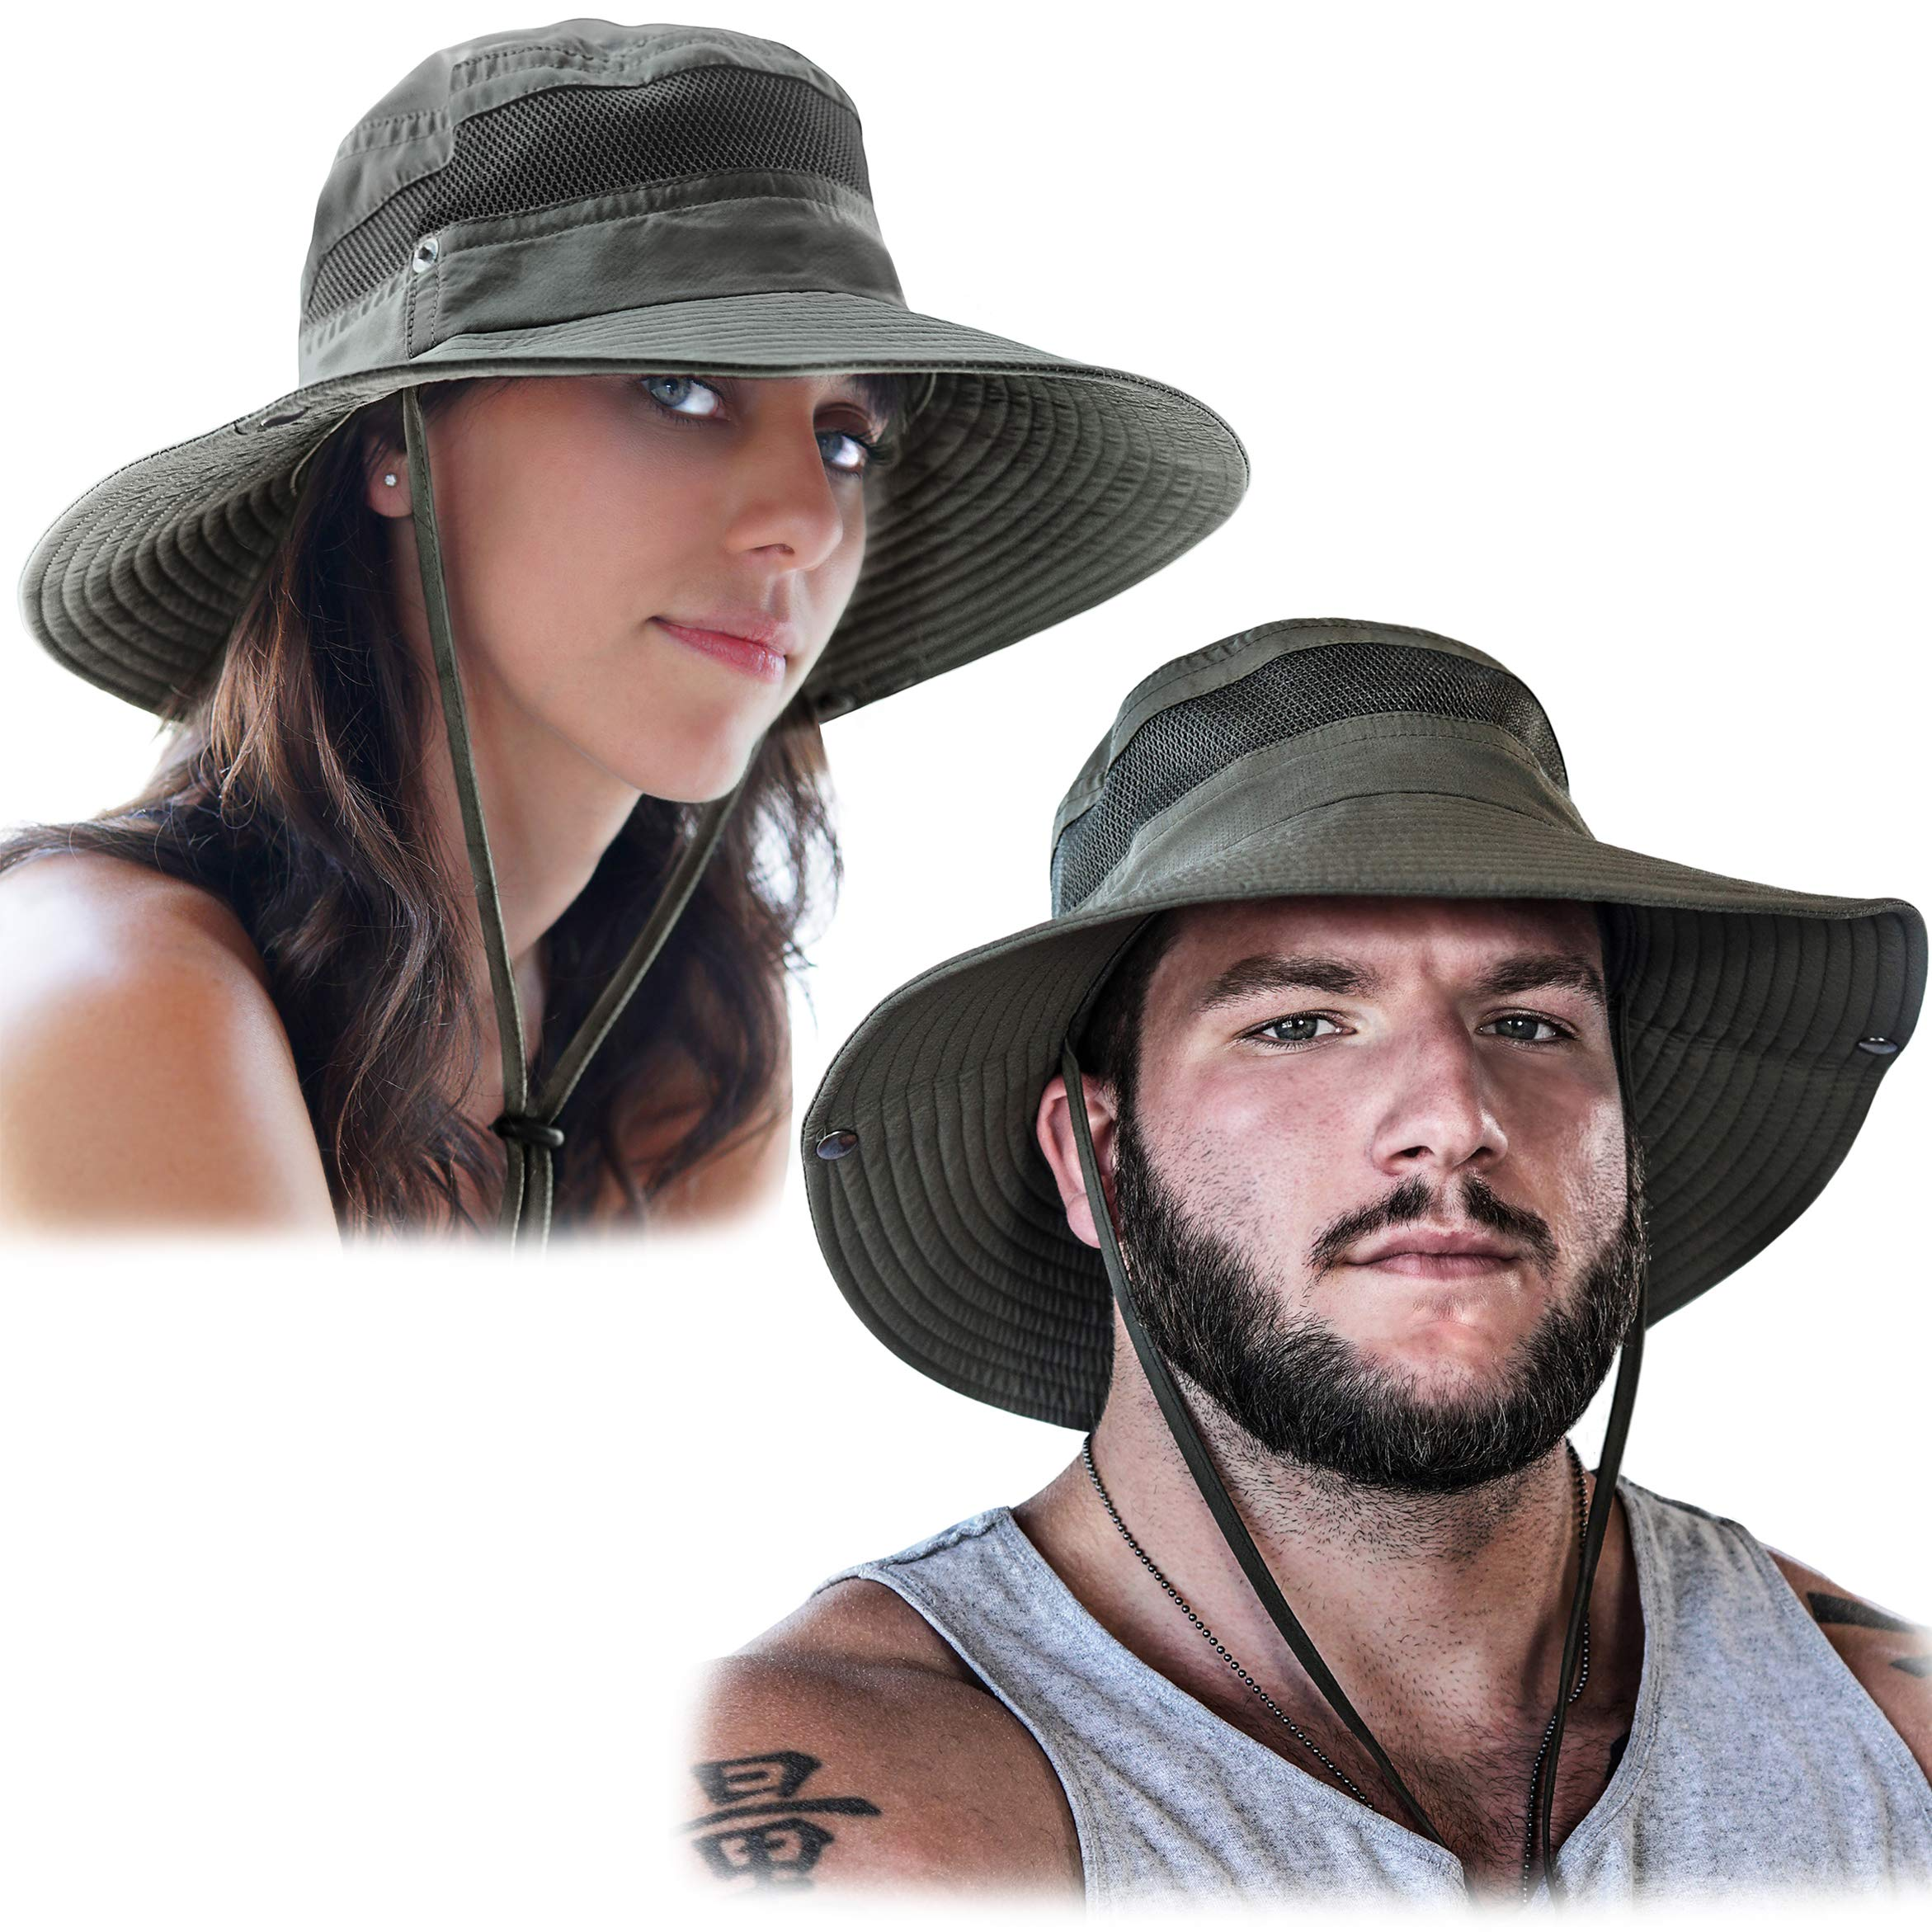 GearTOP Fishing Hat and Safari Cap with Sun Protection | Premium Hats for Men and Women (Army Green - 2 Pack) by GearTOP